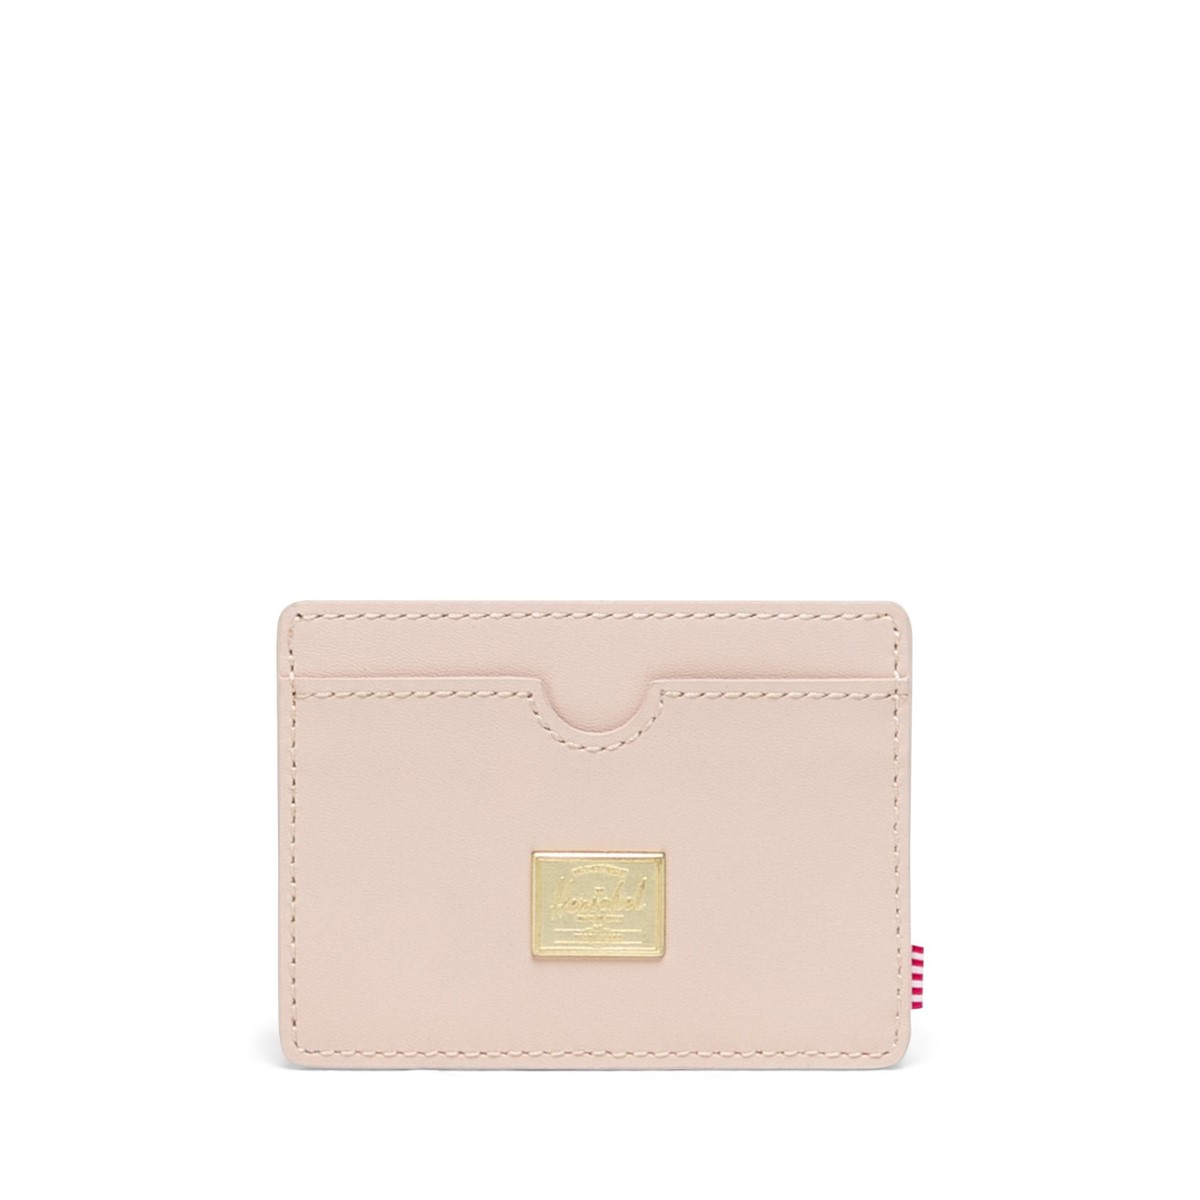 Charlie Leather Wallet in Cream